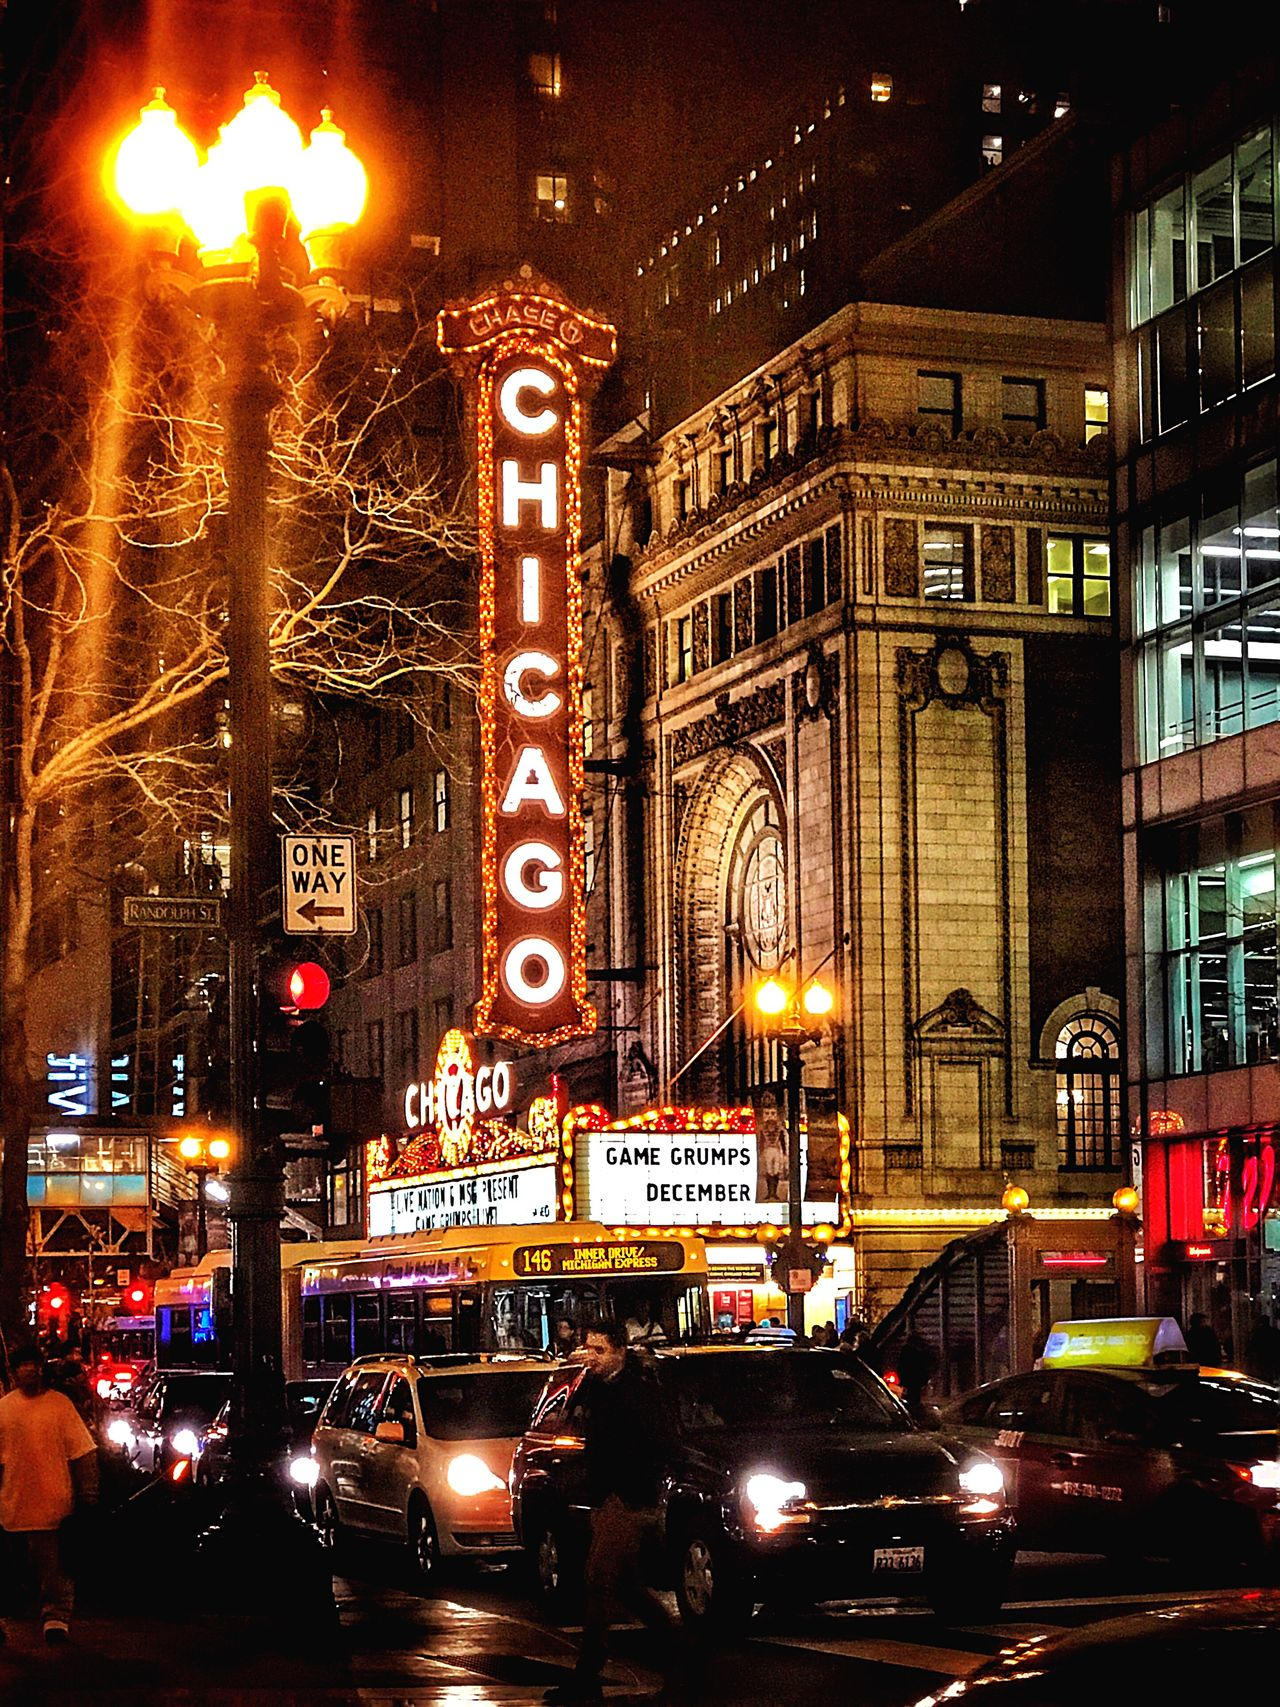 My favorite Marquis Chicago Chicago Theatre Perfect Always Architecture Lights And Shadows Illuminated Night Nightphotography Night Lights Iphone7+ Travel Visit MyCity❤️ EyeEm EyeEm Best Shots EyeEm Gallery EyeEmBestPics